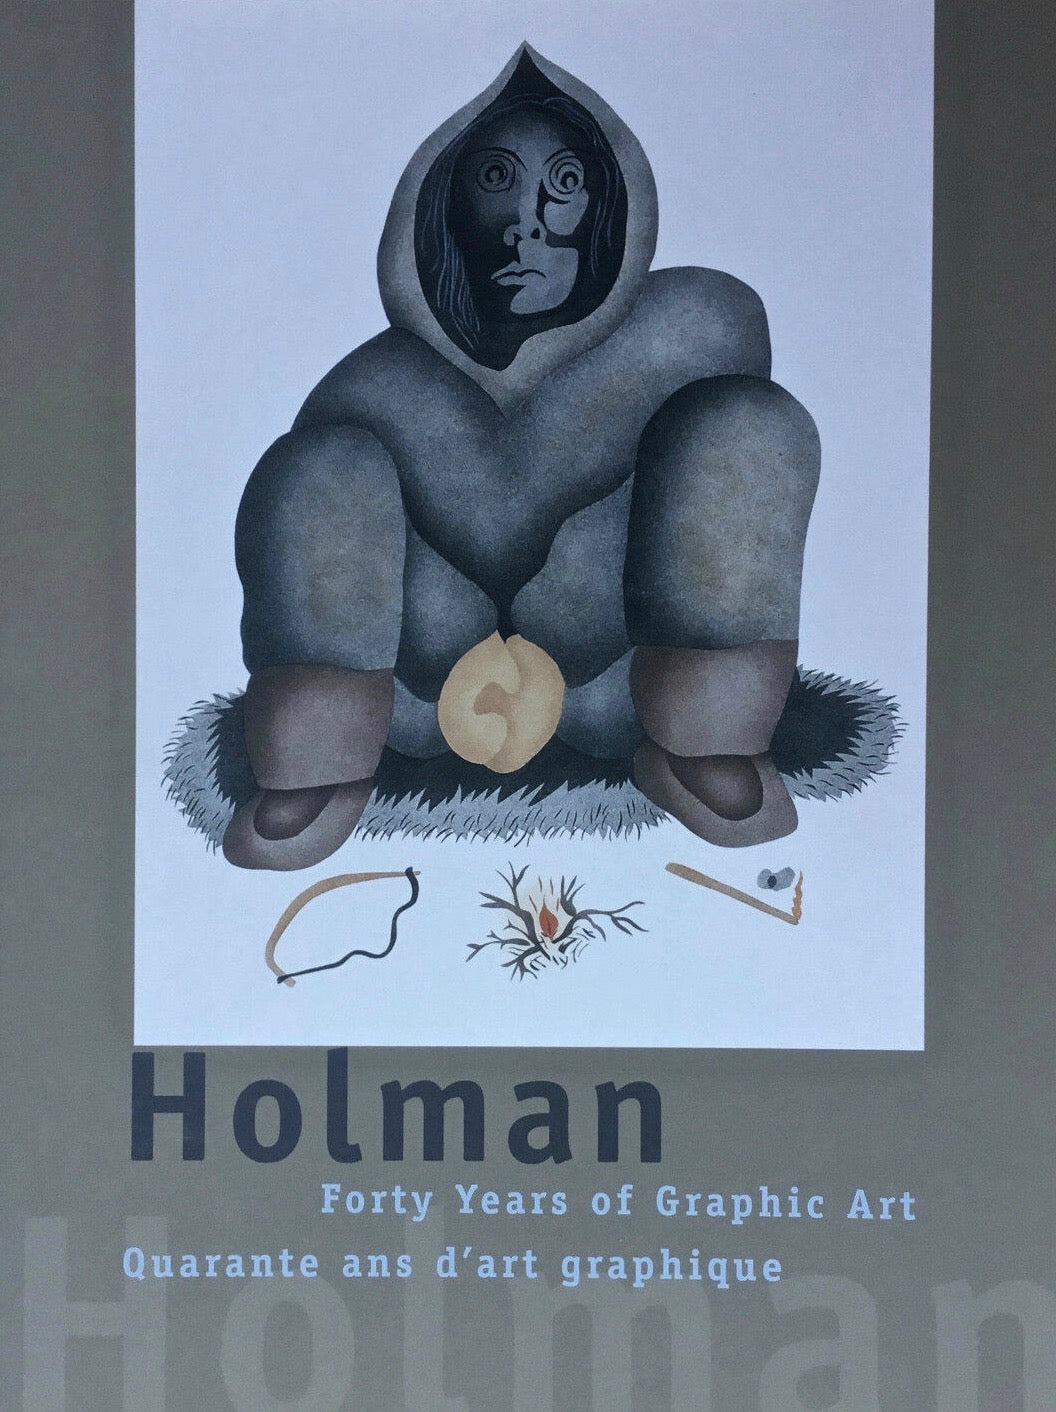 HOLMAN: FORTY YEARS OF GRAPHIC ART KALVAK NANOGAK